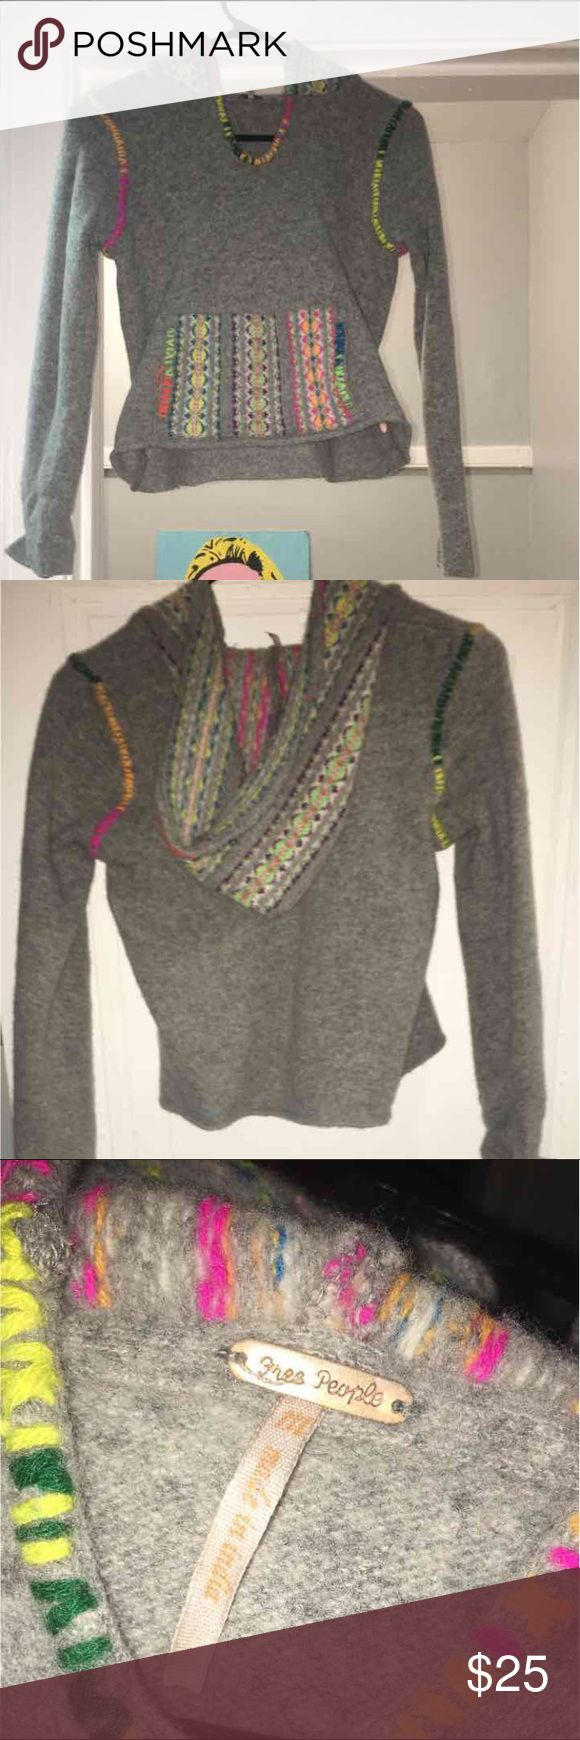 Free People wool pullover Super cute, wool hoodie/pullover. The color is a light gray with a LOT of neon colors!! It SAYS medium but the size fits a S but would much better fit an XS. perfect for cool summer nights 😎 Free People Sweaters